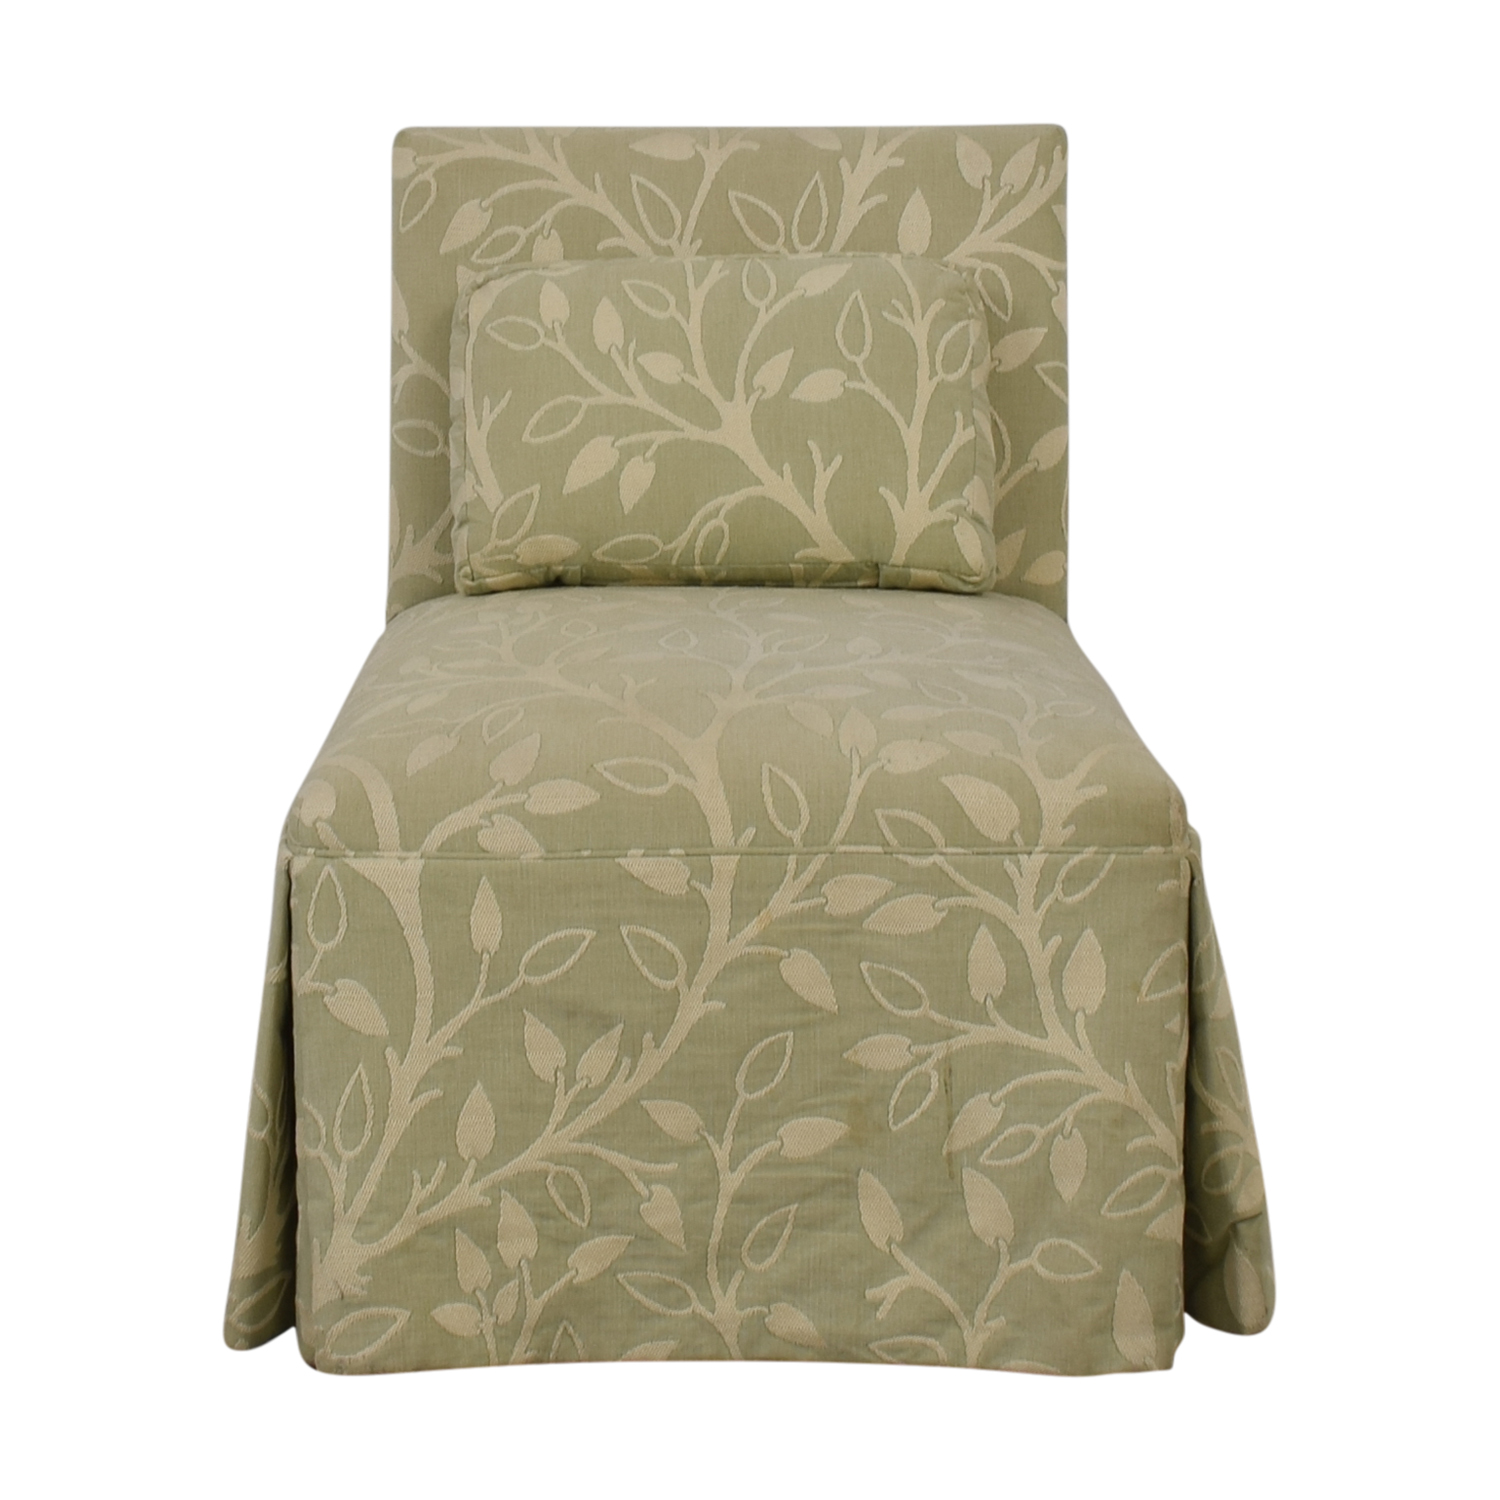 Furniture Masters Furniture Masters Leaf Chair on sale